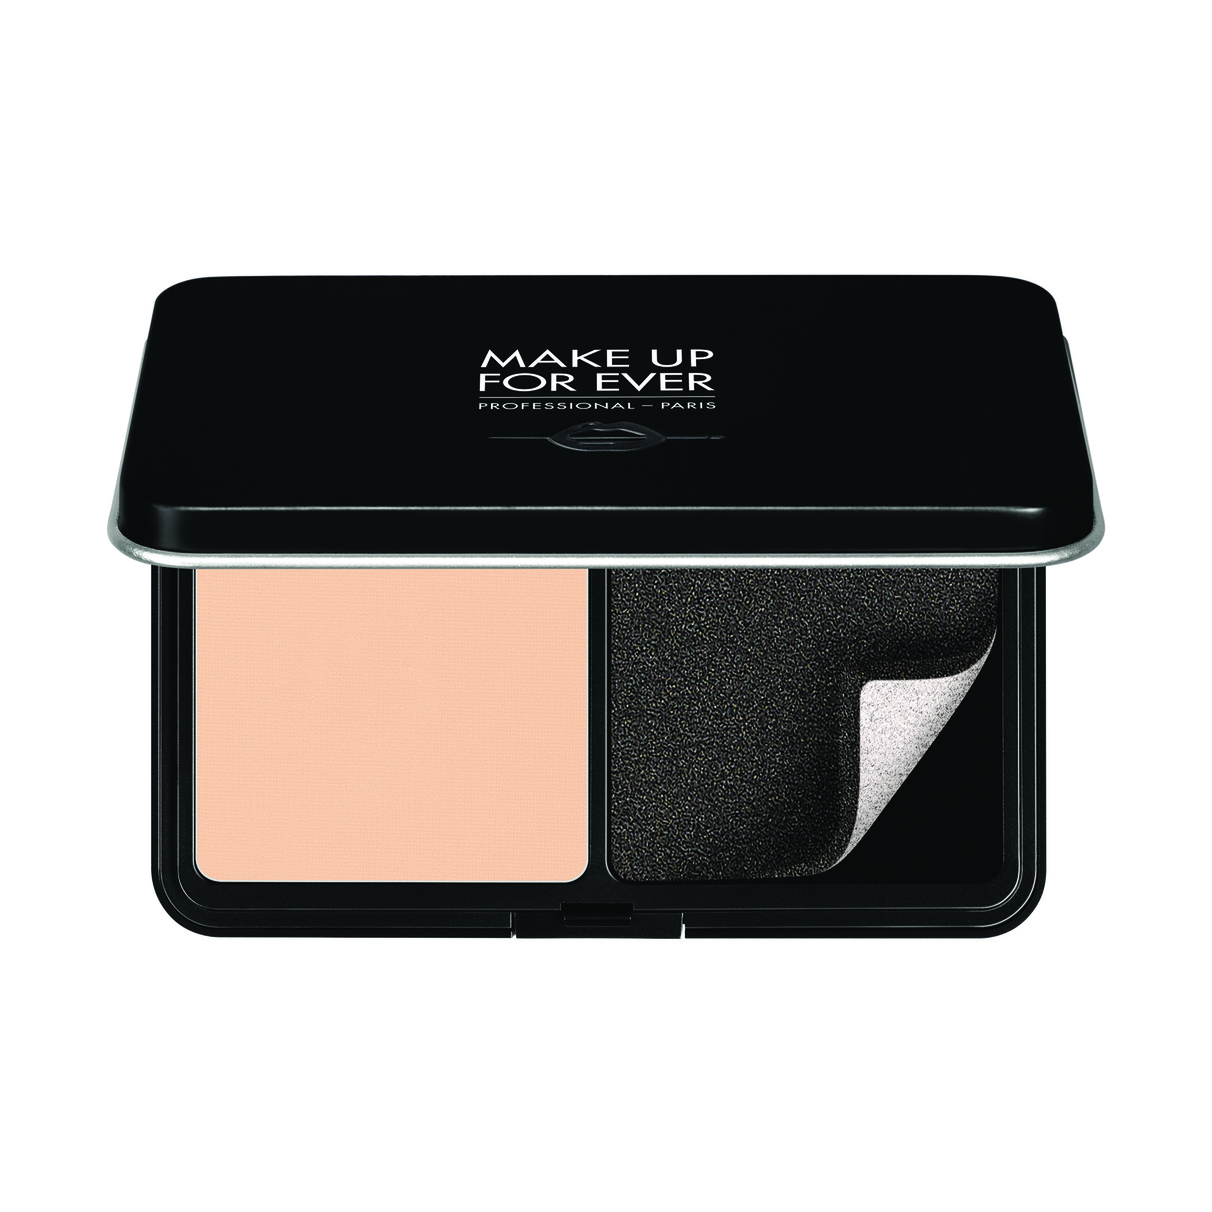 Make up For ever MATTE VELVET SKIN BLURRING POWDER FOUNDATION